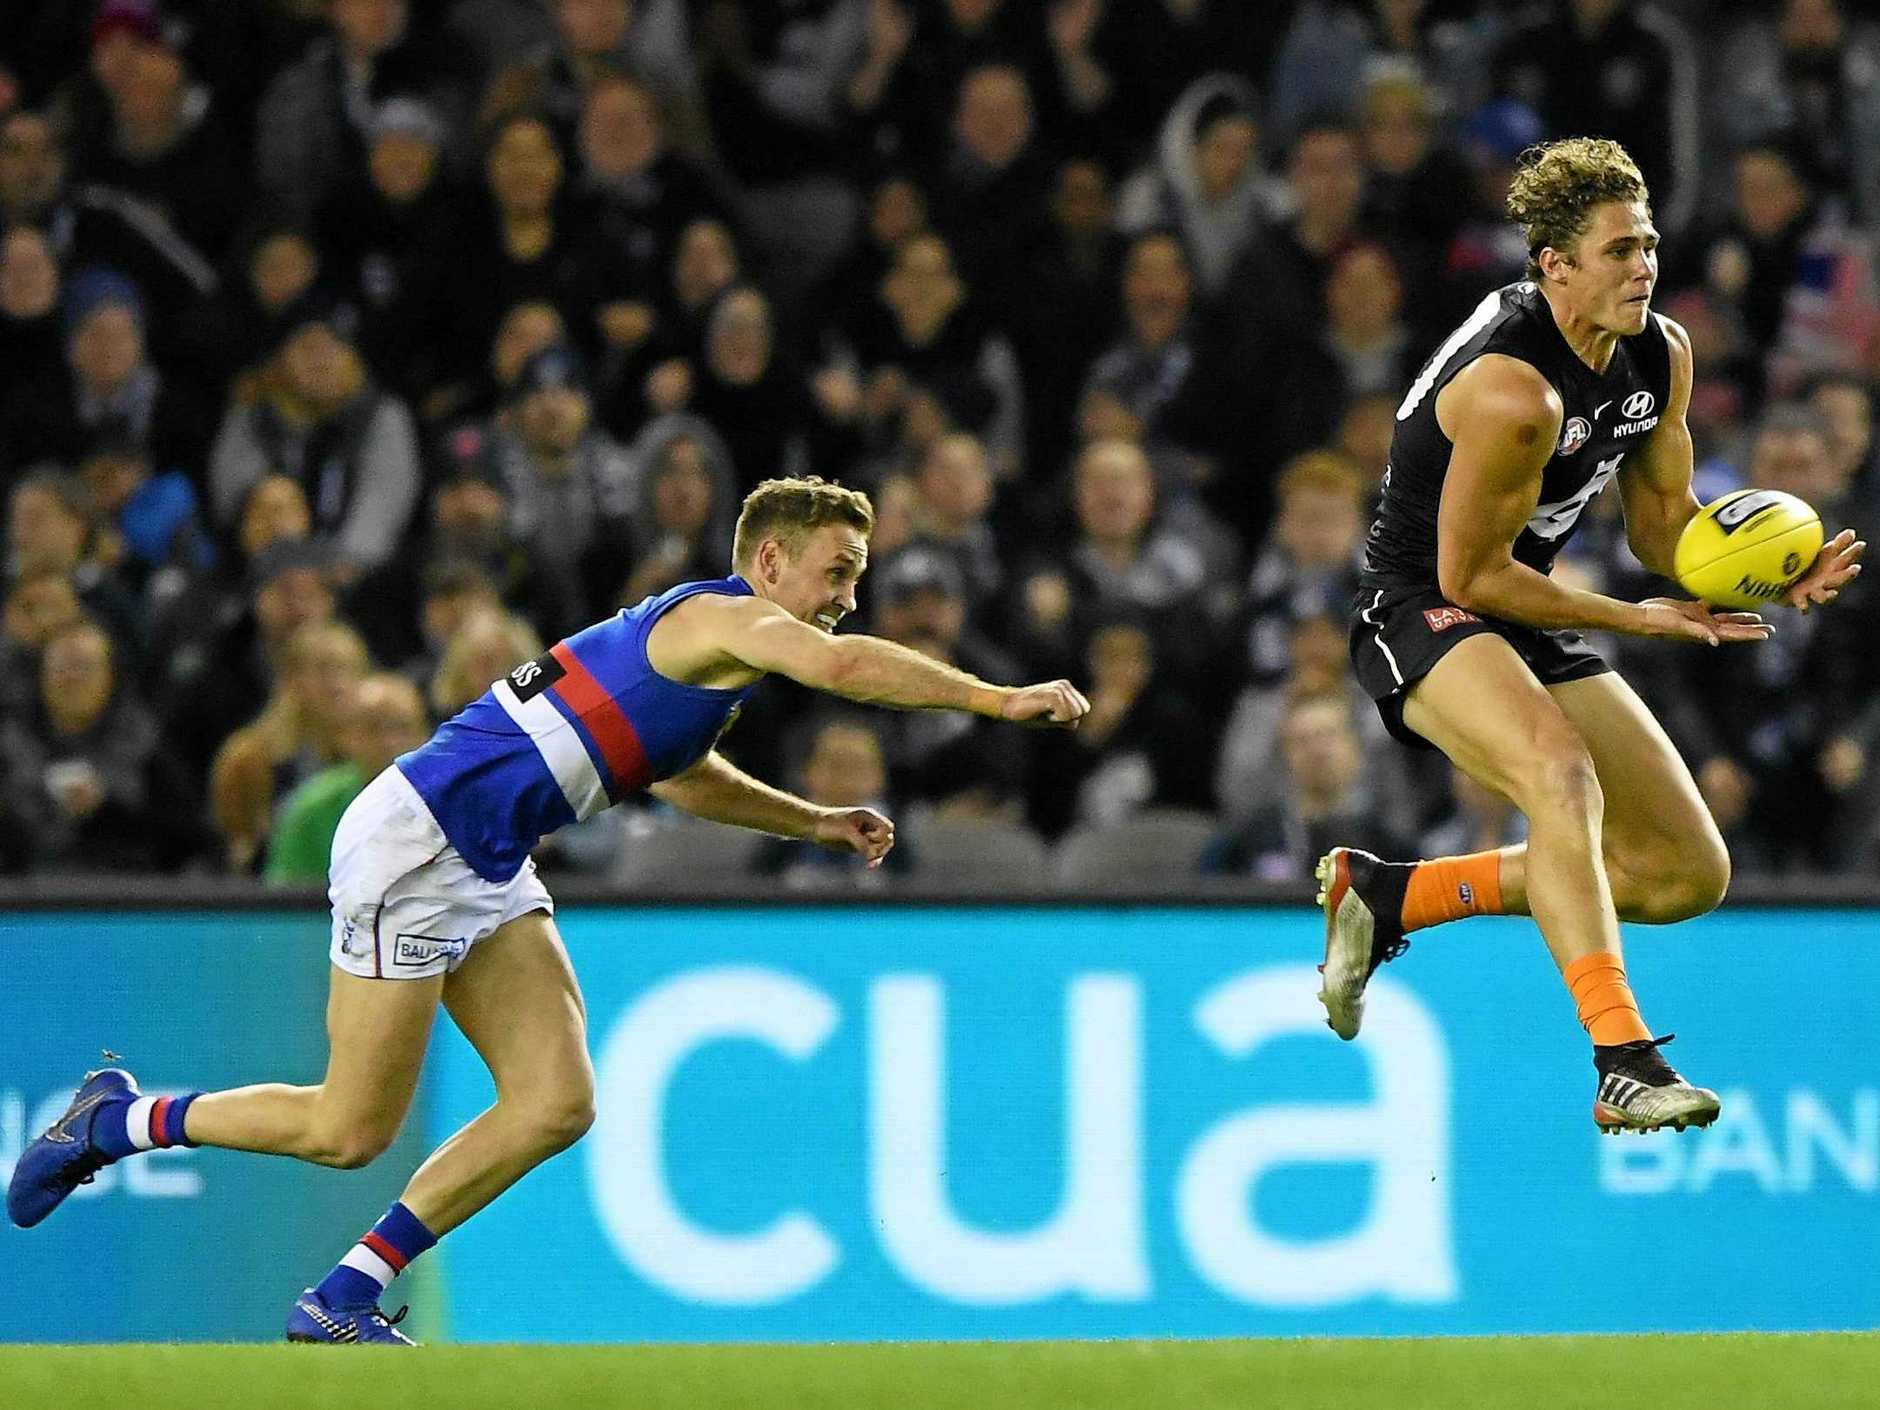 Carlton's Charlie Curnow marks in front of the Bulldogs' Hayden Crozier on June 15 last year. Picture: Julian Smith/AAP